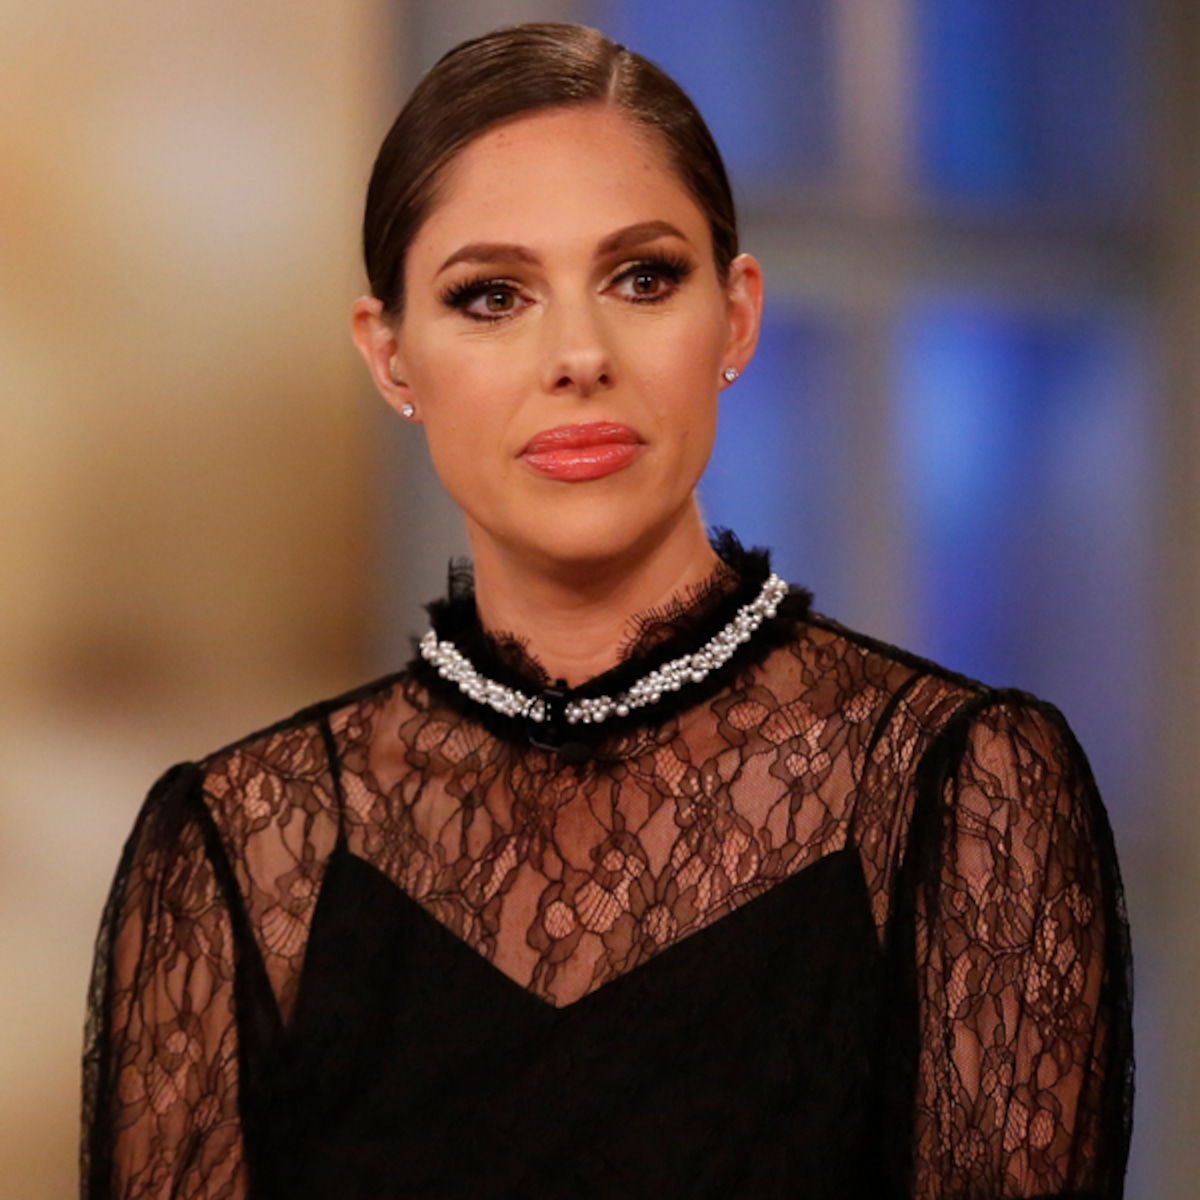 Abby Huntsman >> Abby Hunstman Left The View Over Toxic Work Environment